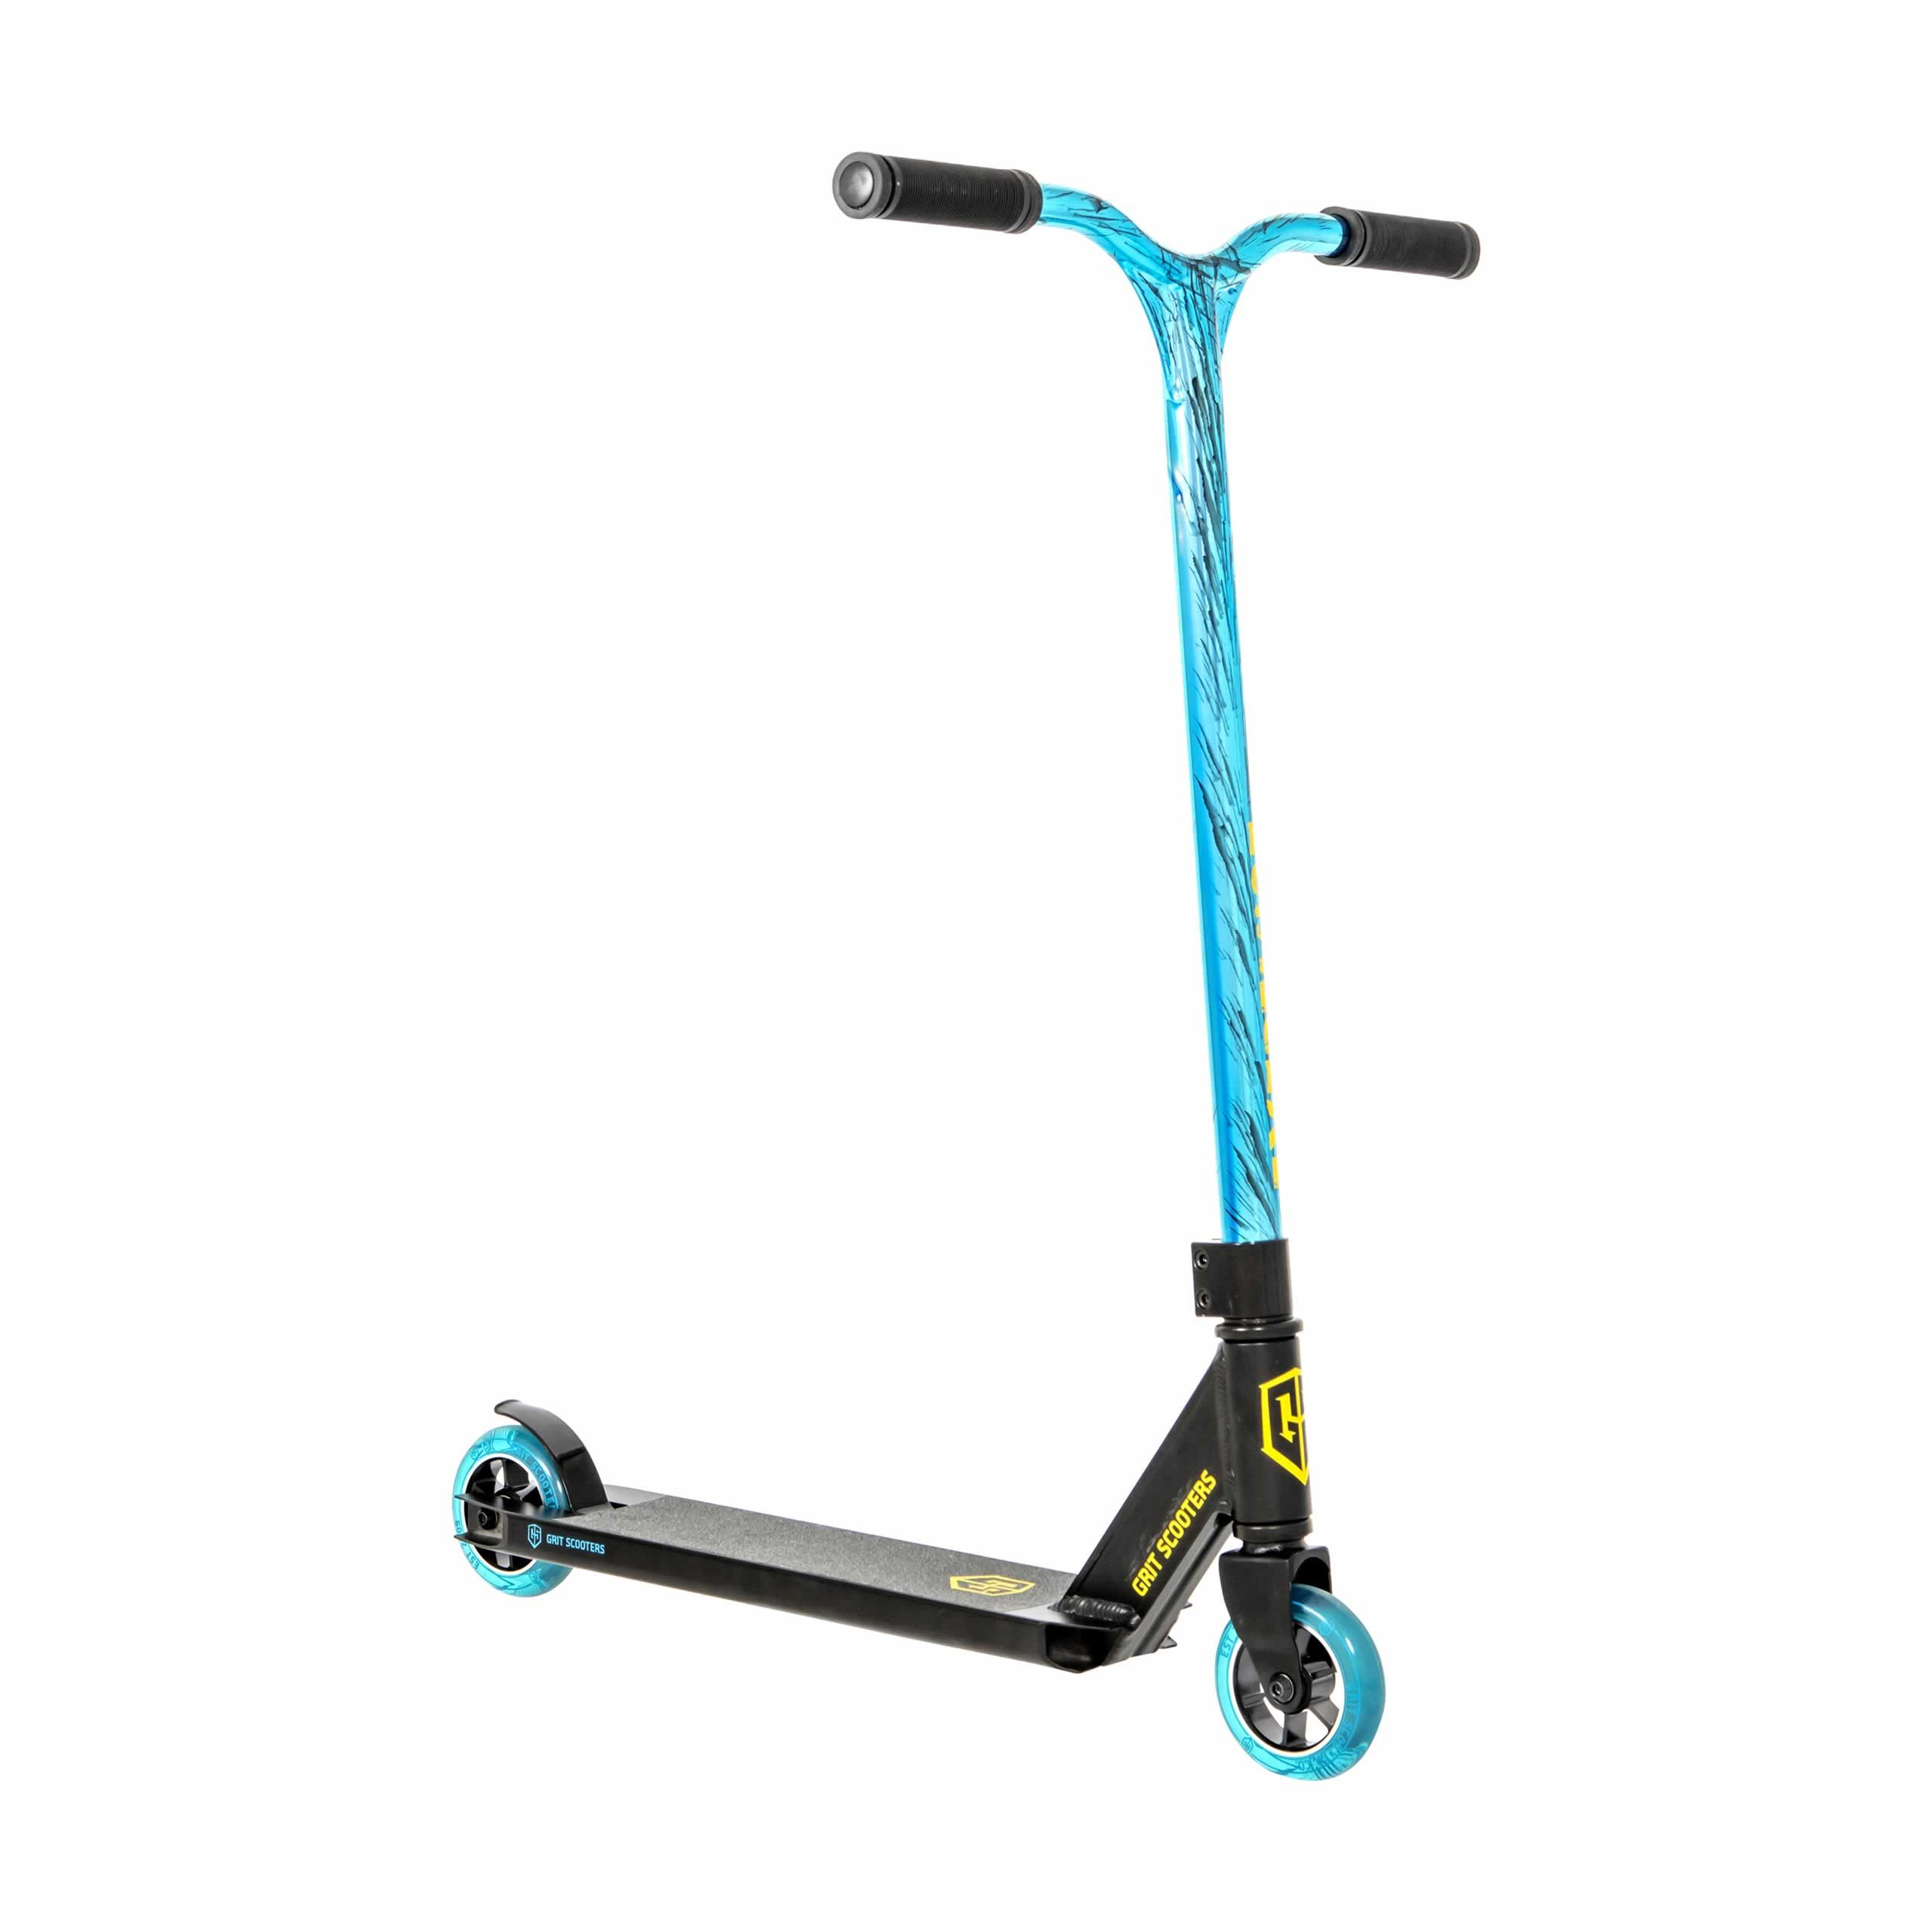 Grit Extremist 2021 Scooter - Black/Vapour Blue Black Laser